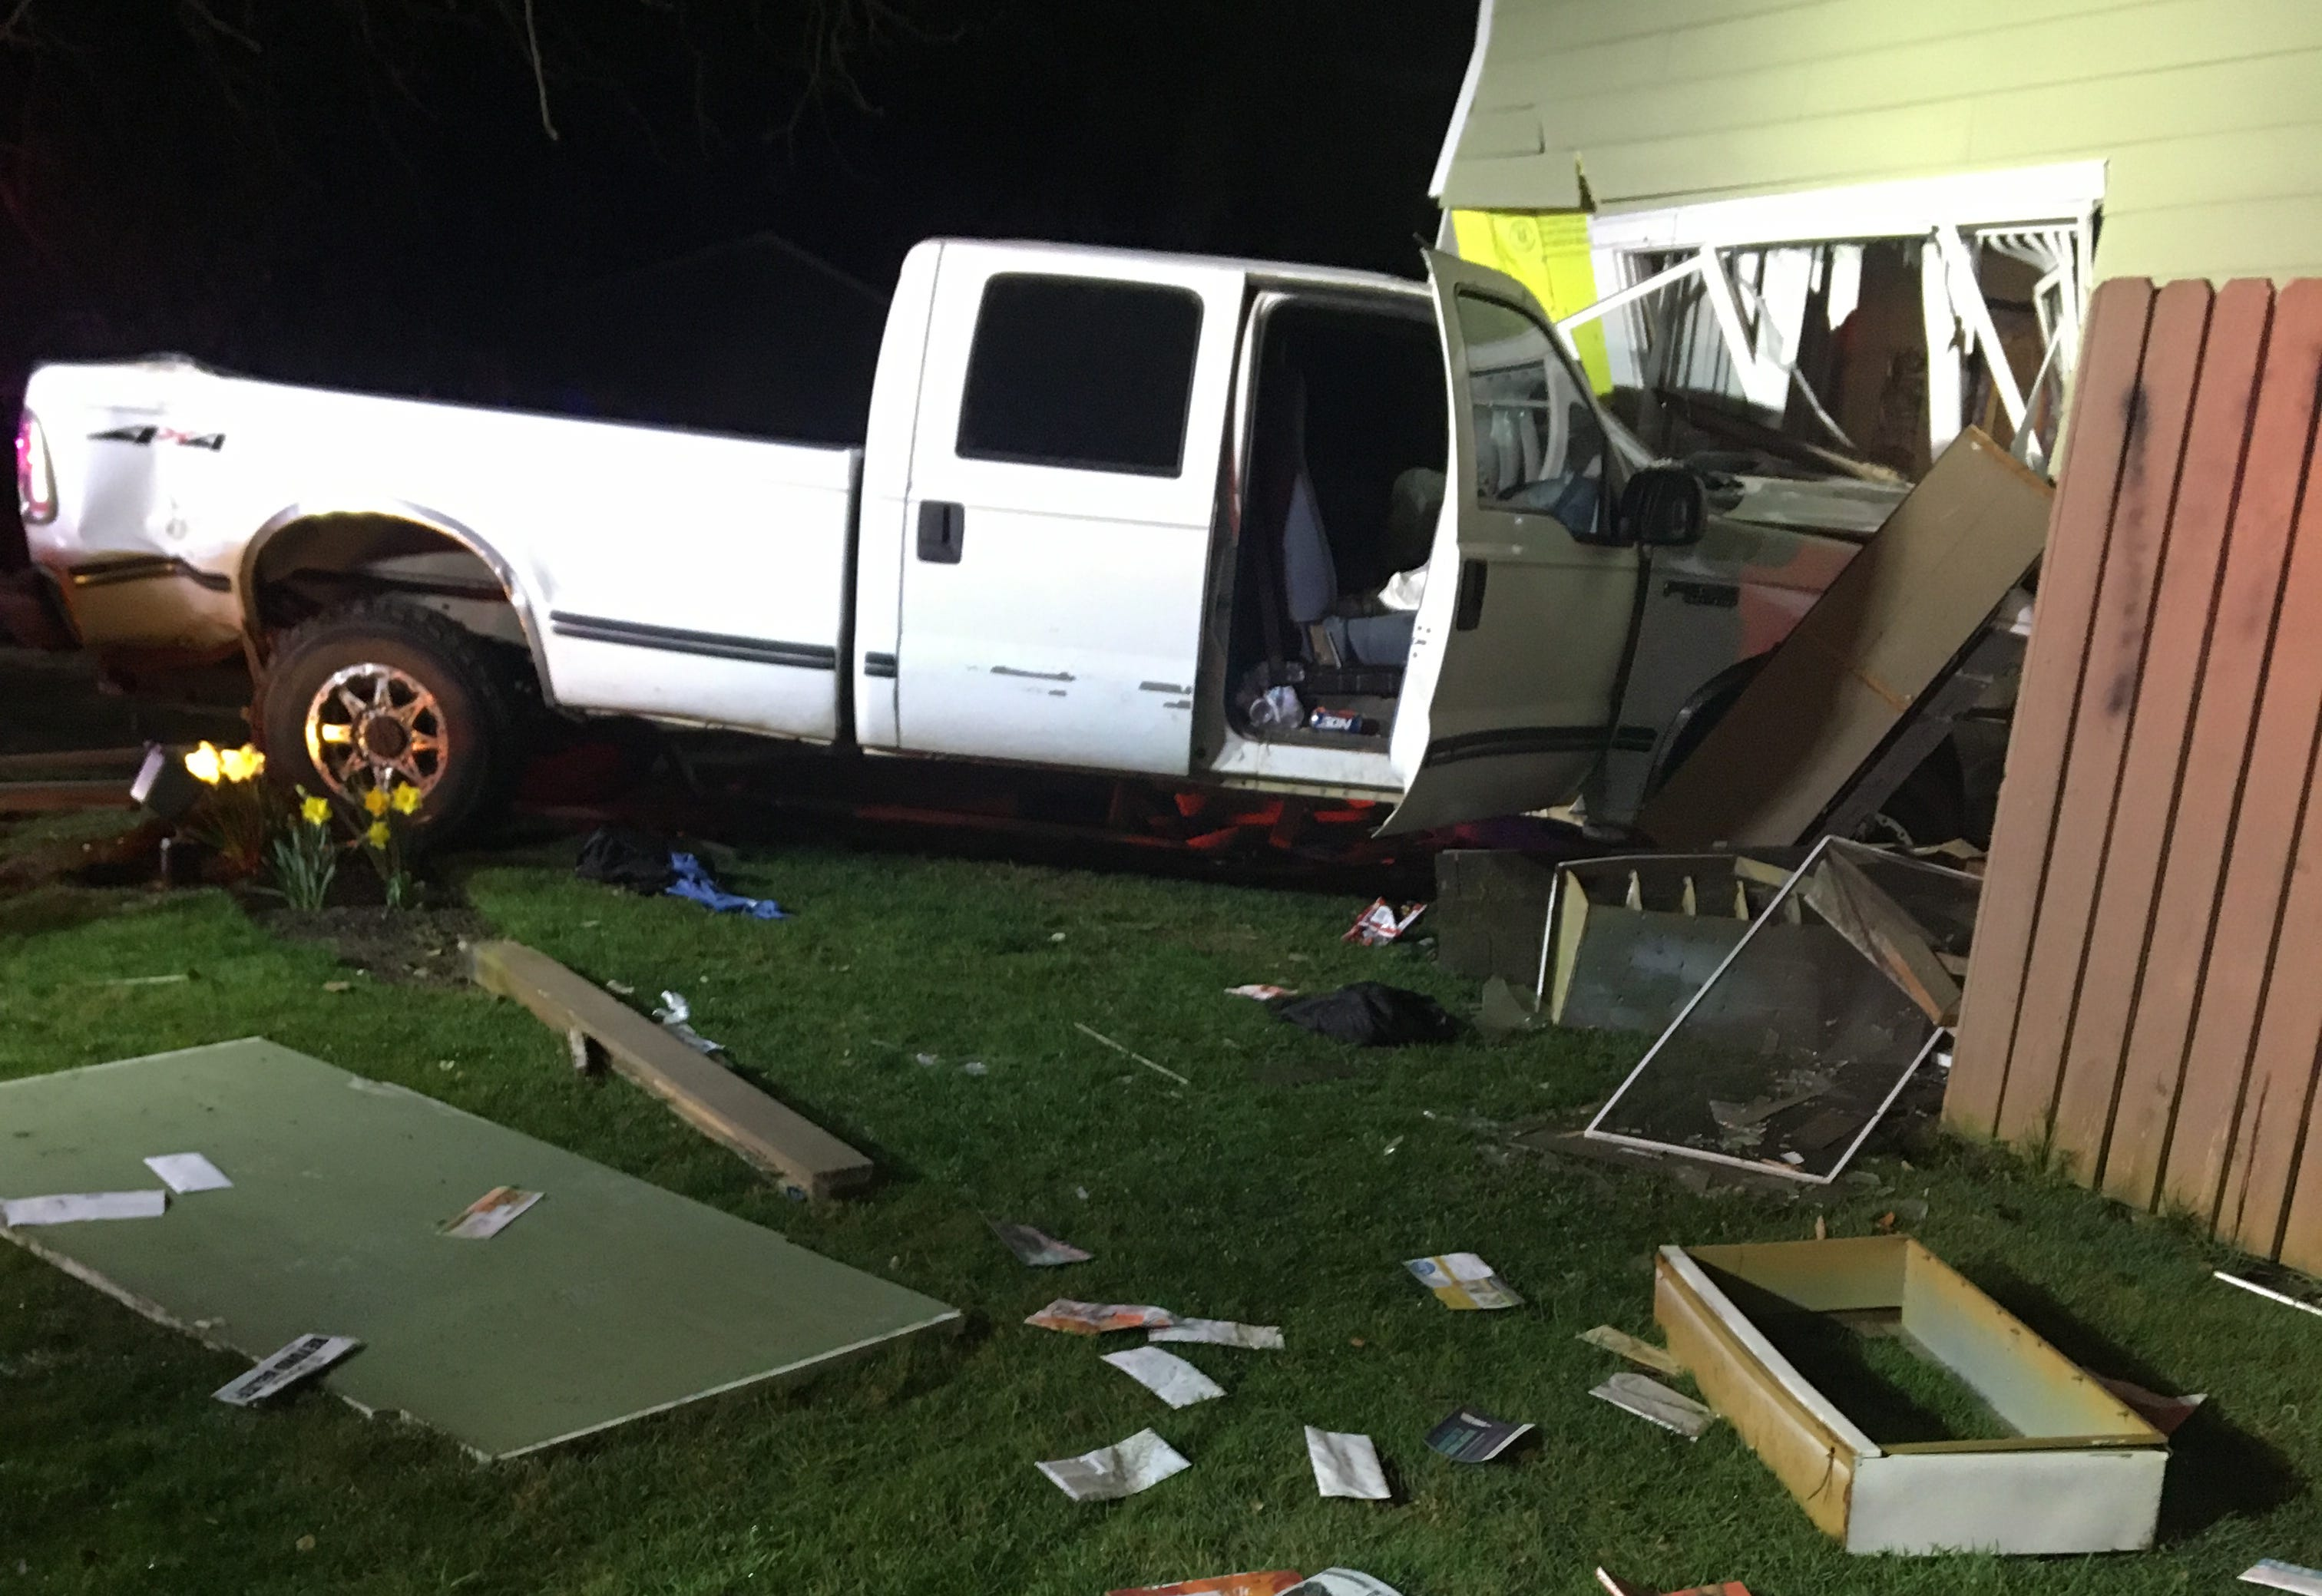 A Woodburn man was arrested early Friday morning on drunk drivingand assault charges afterdrivinga pickup truck into an apartment complex, according to the Woodburn Police Department.